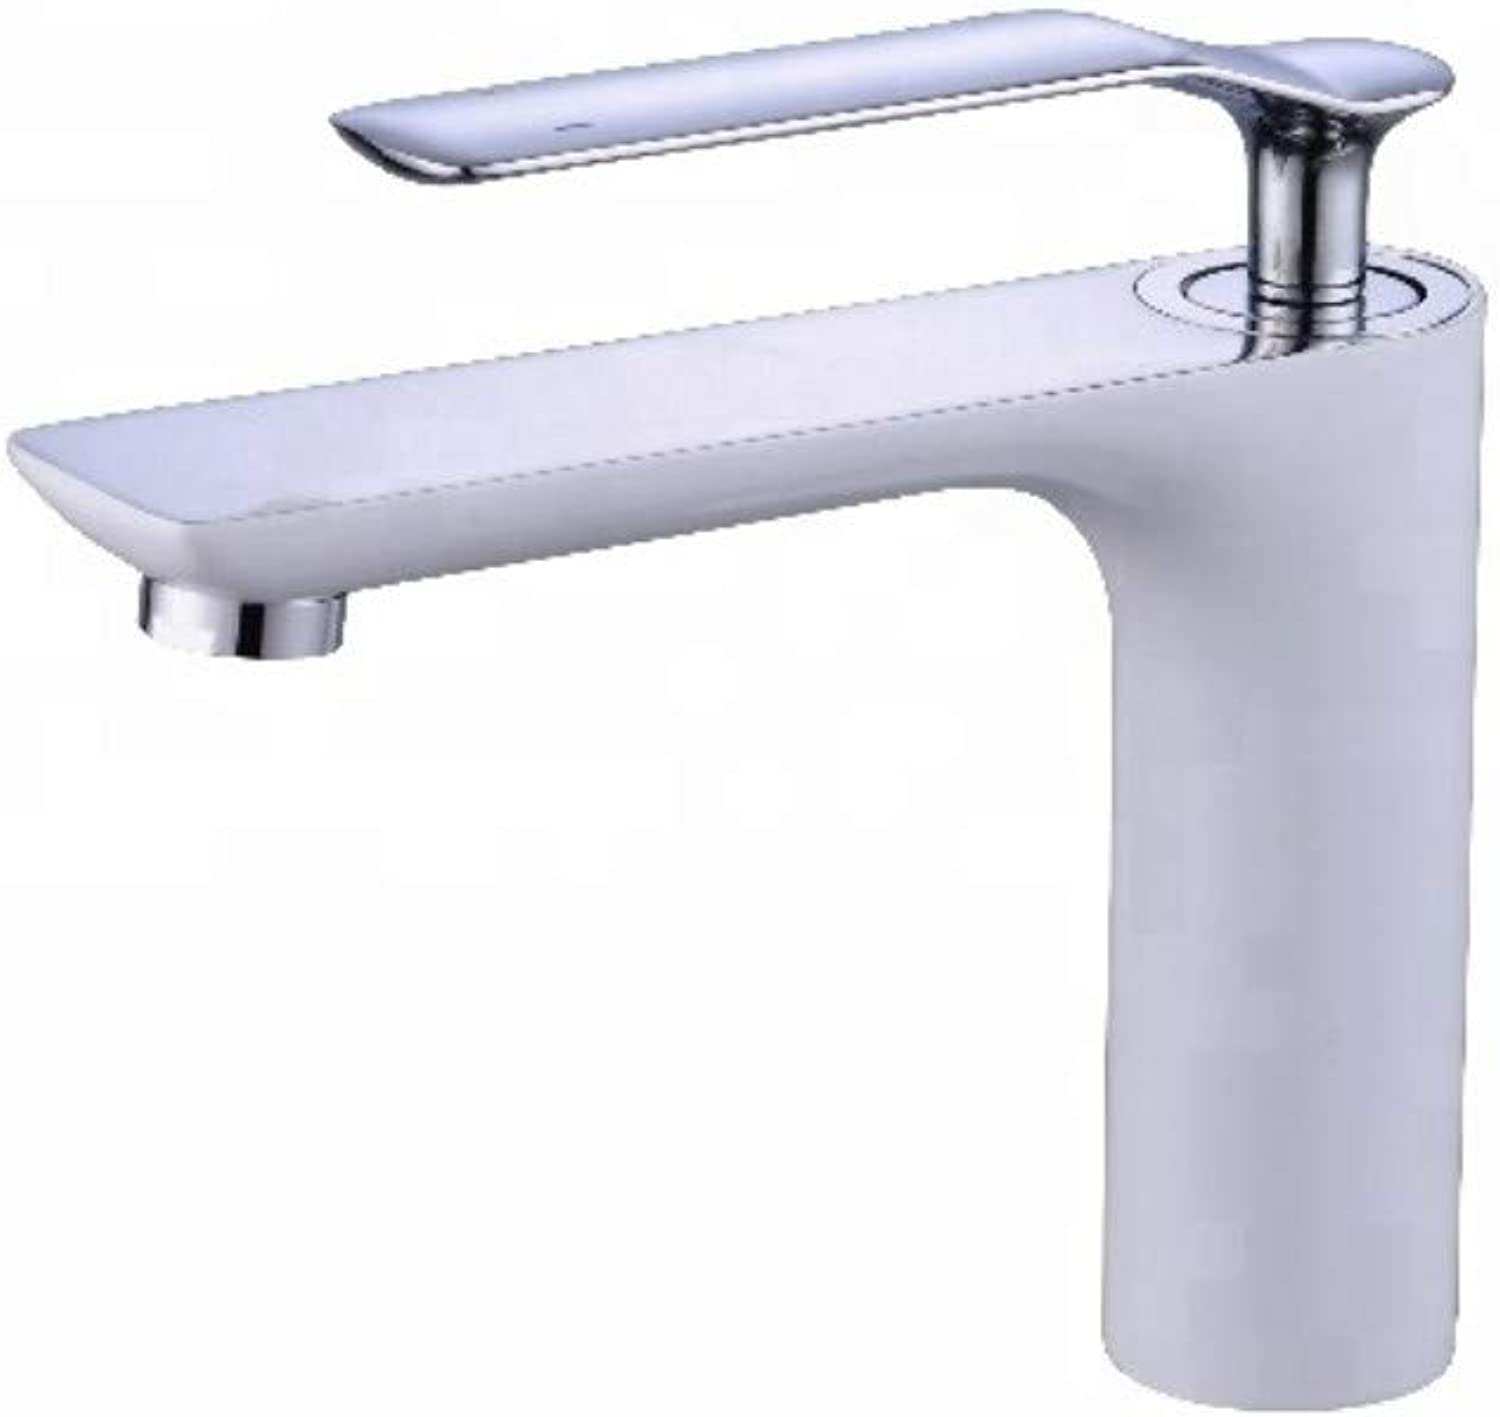 Bathroom Sink Tap Luxury Basin Sink Mixer Tap White Deck Mounted Single Handle Modern Basin Faucet